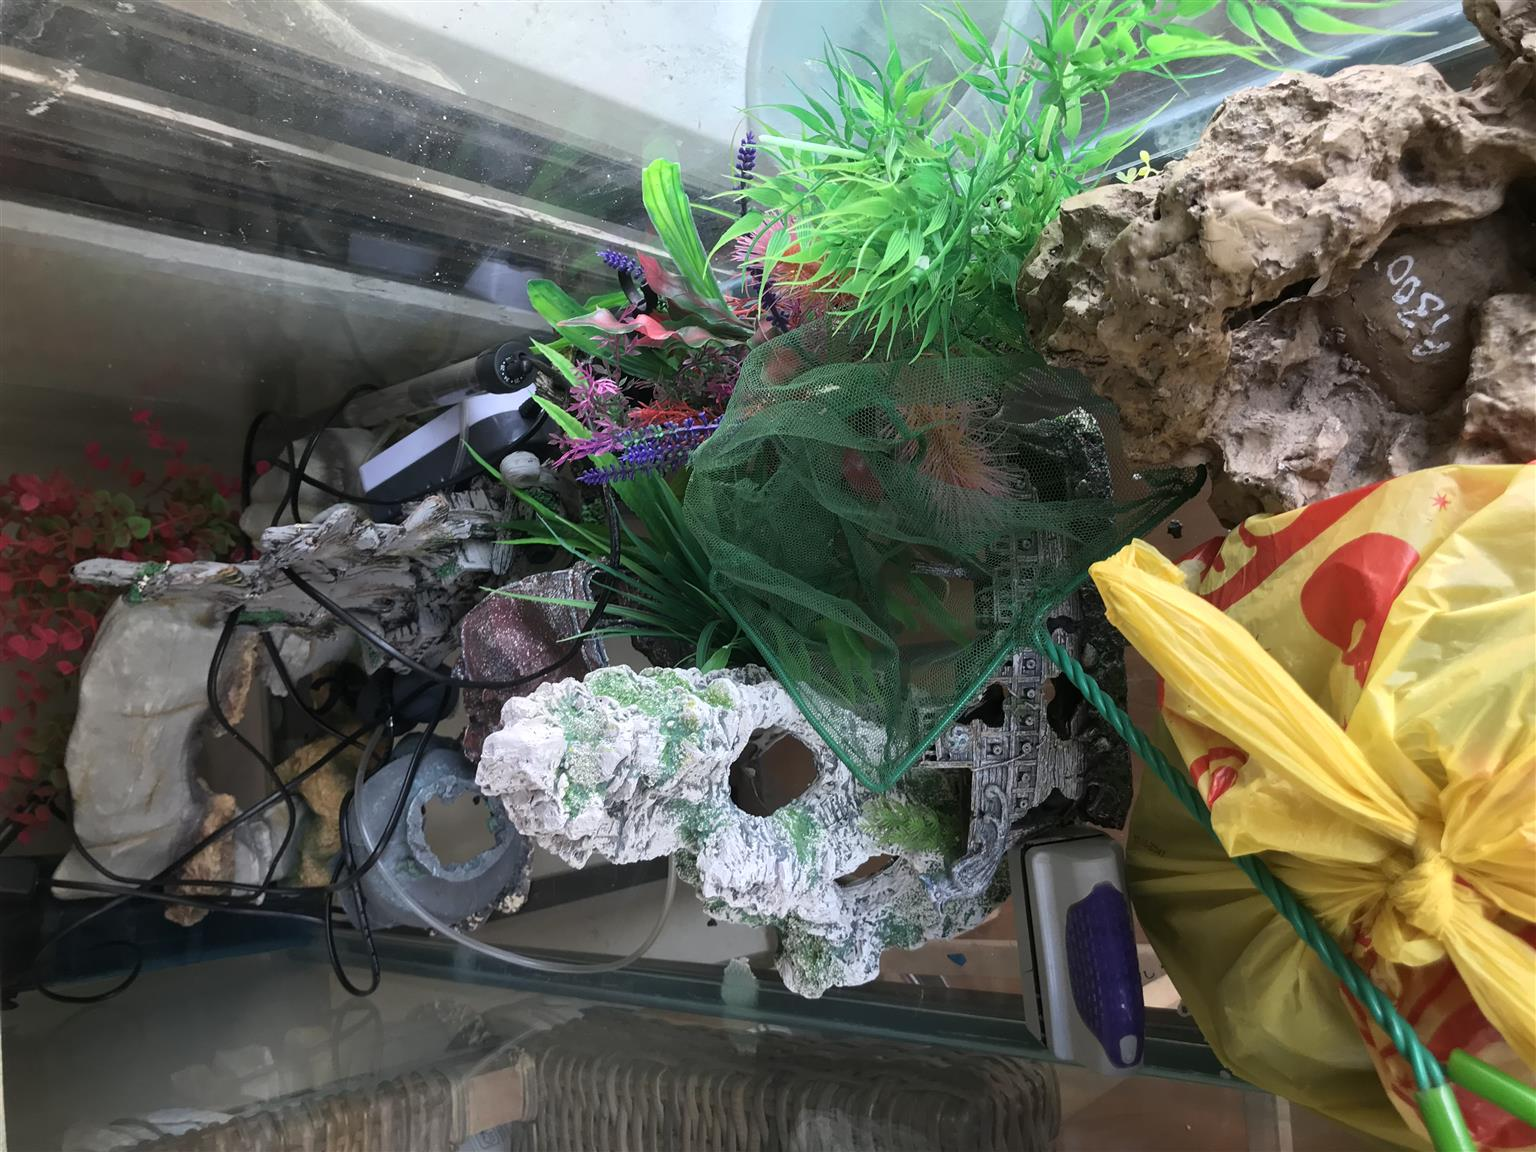 a variety of fish tank ornaments heater and pump